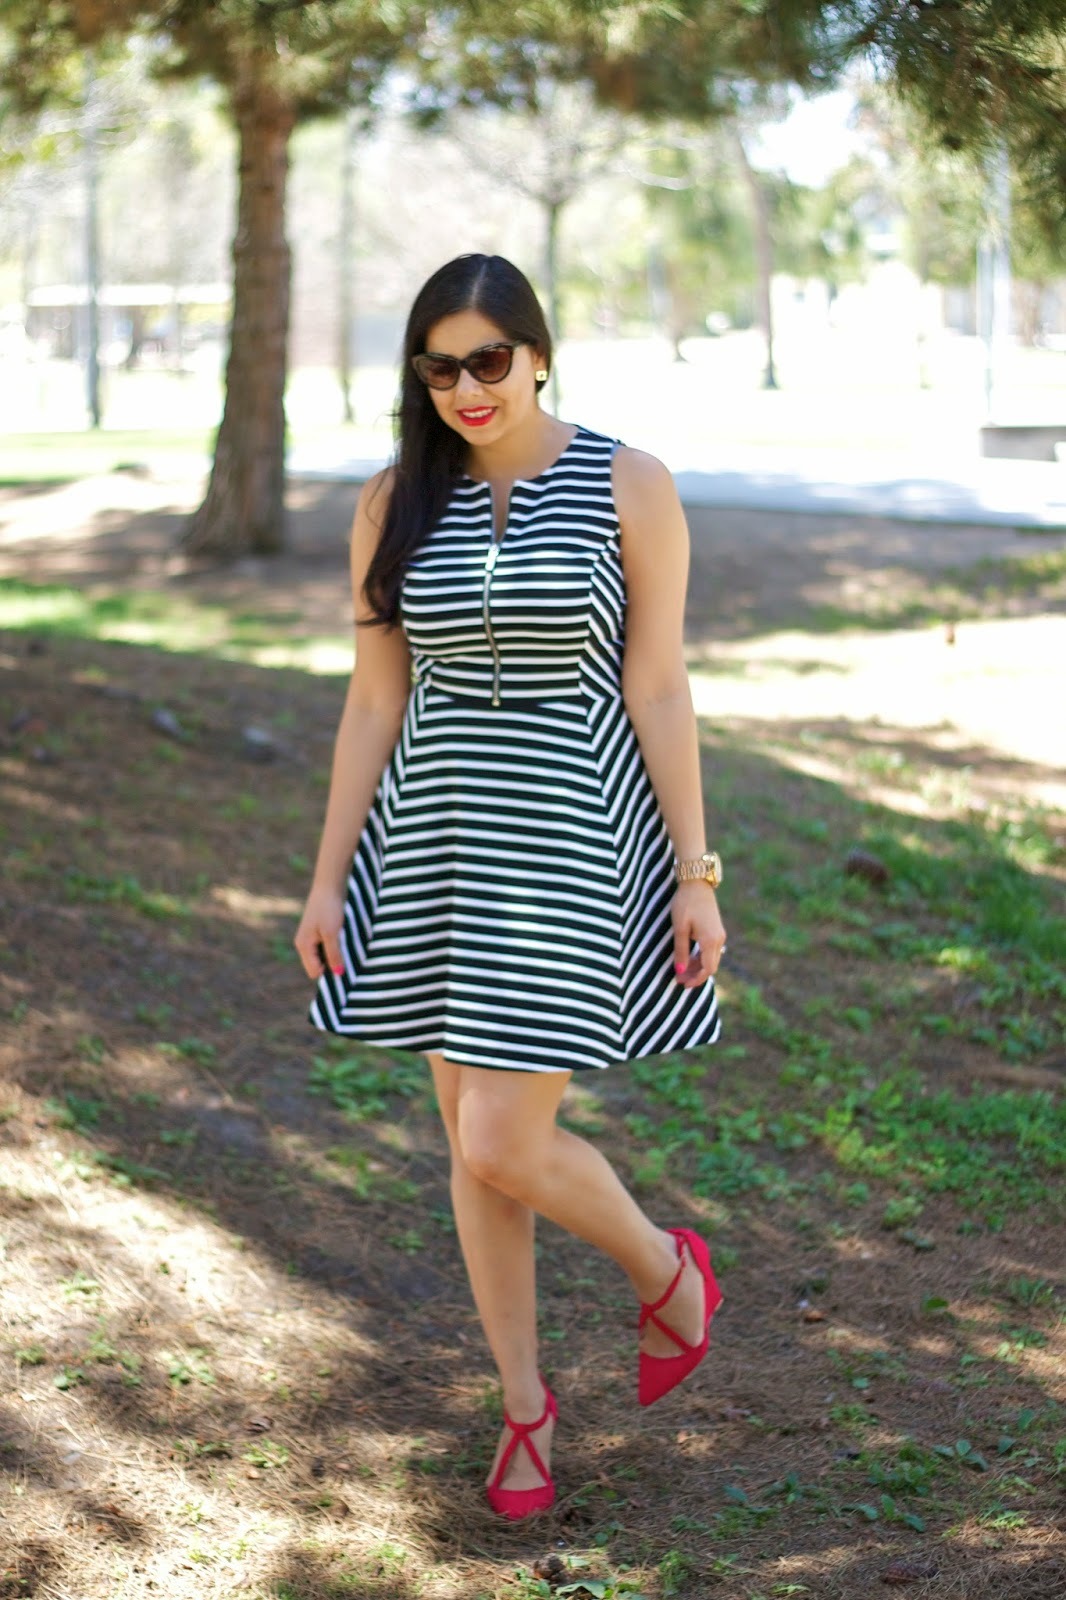 Spring Stripes, Spring Stripes 2014, spring black and white, summer stripes